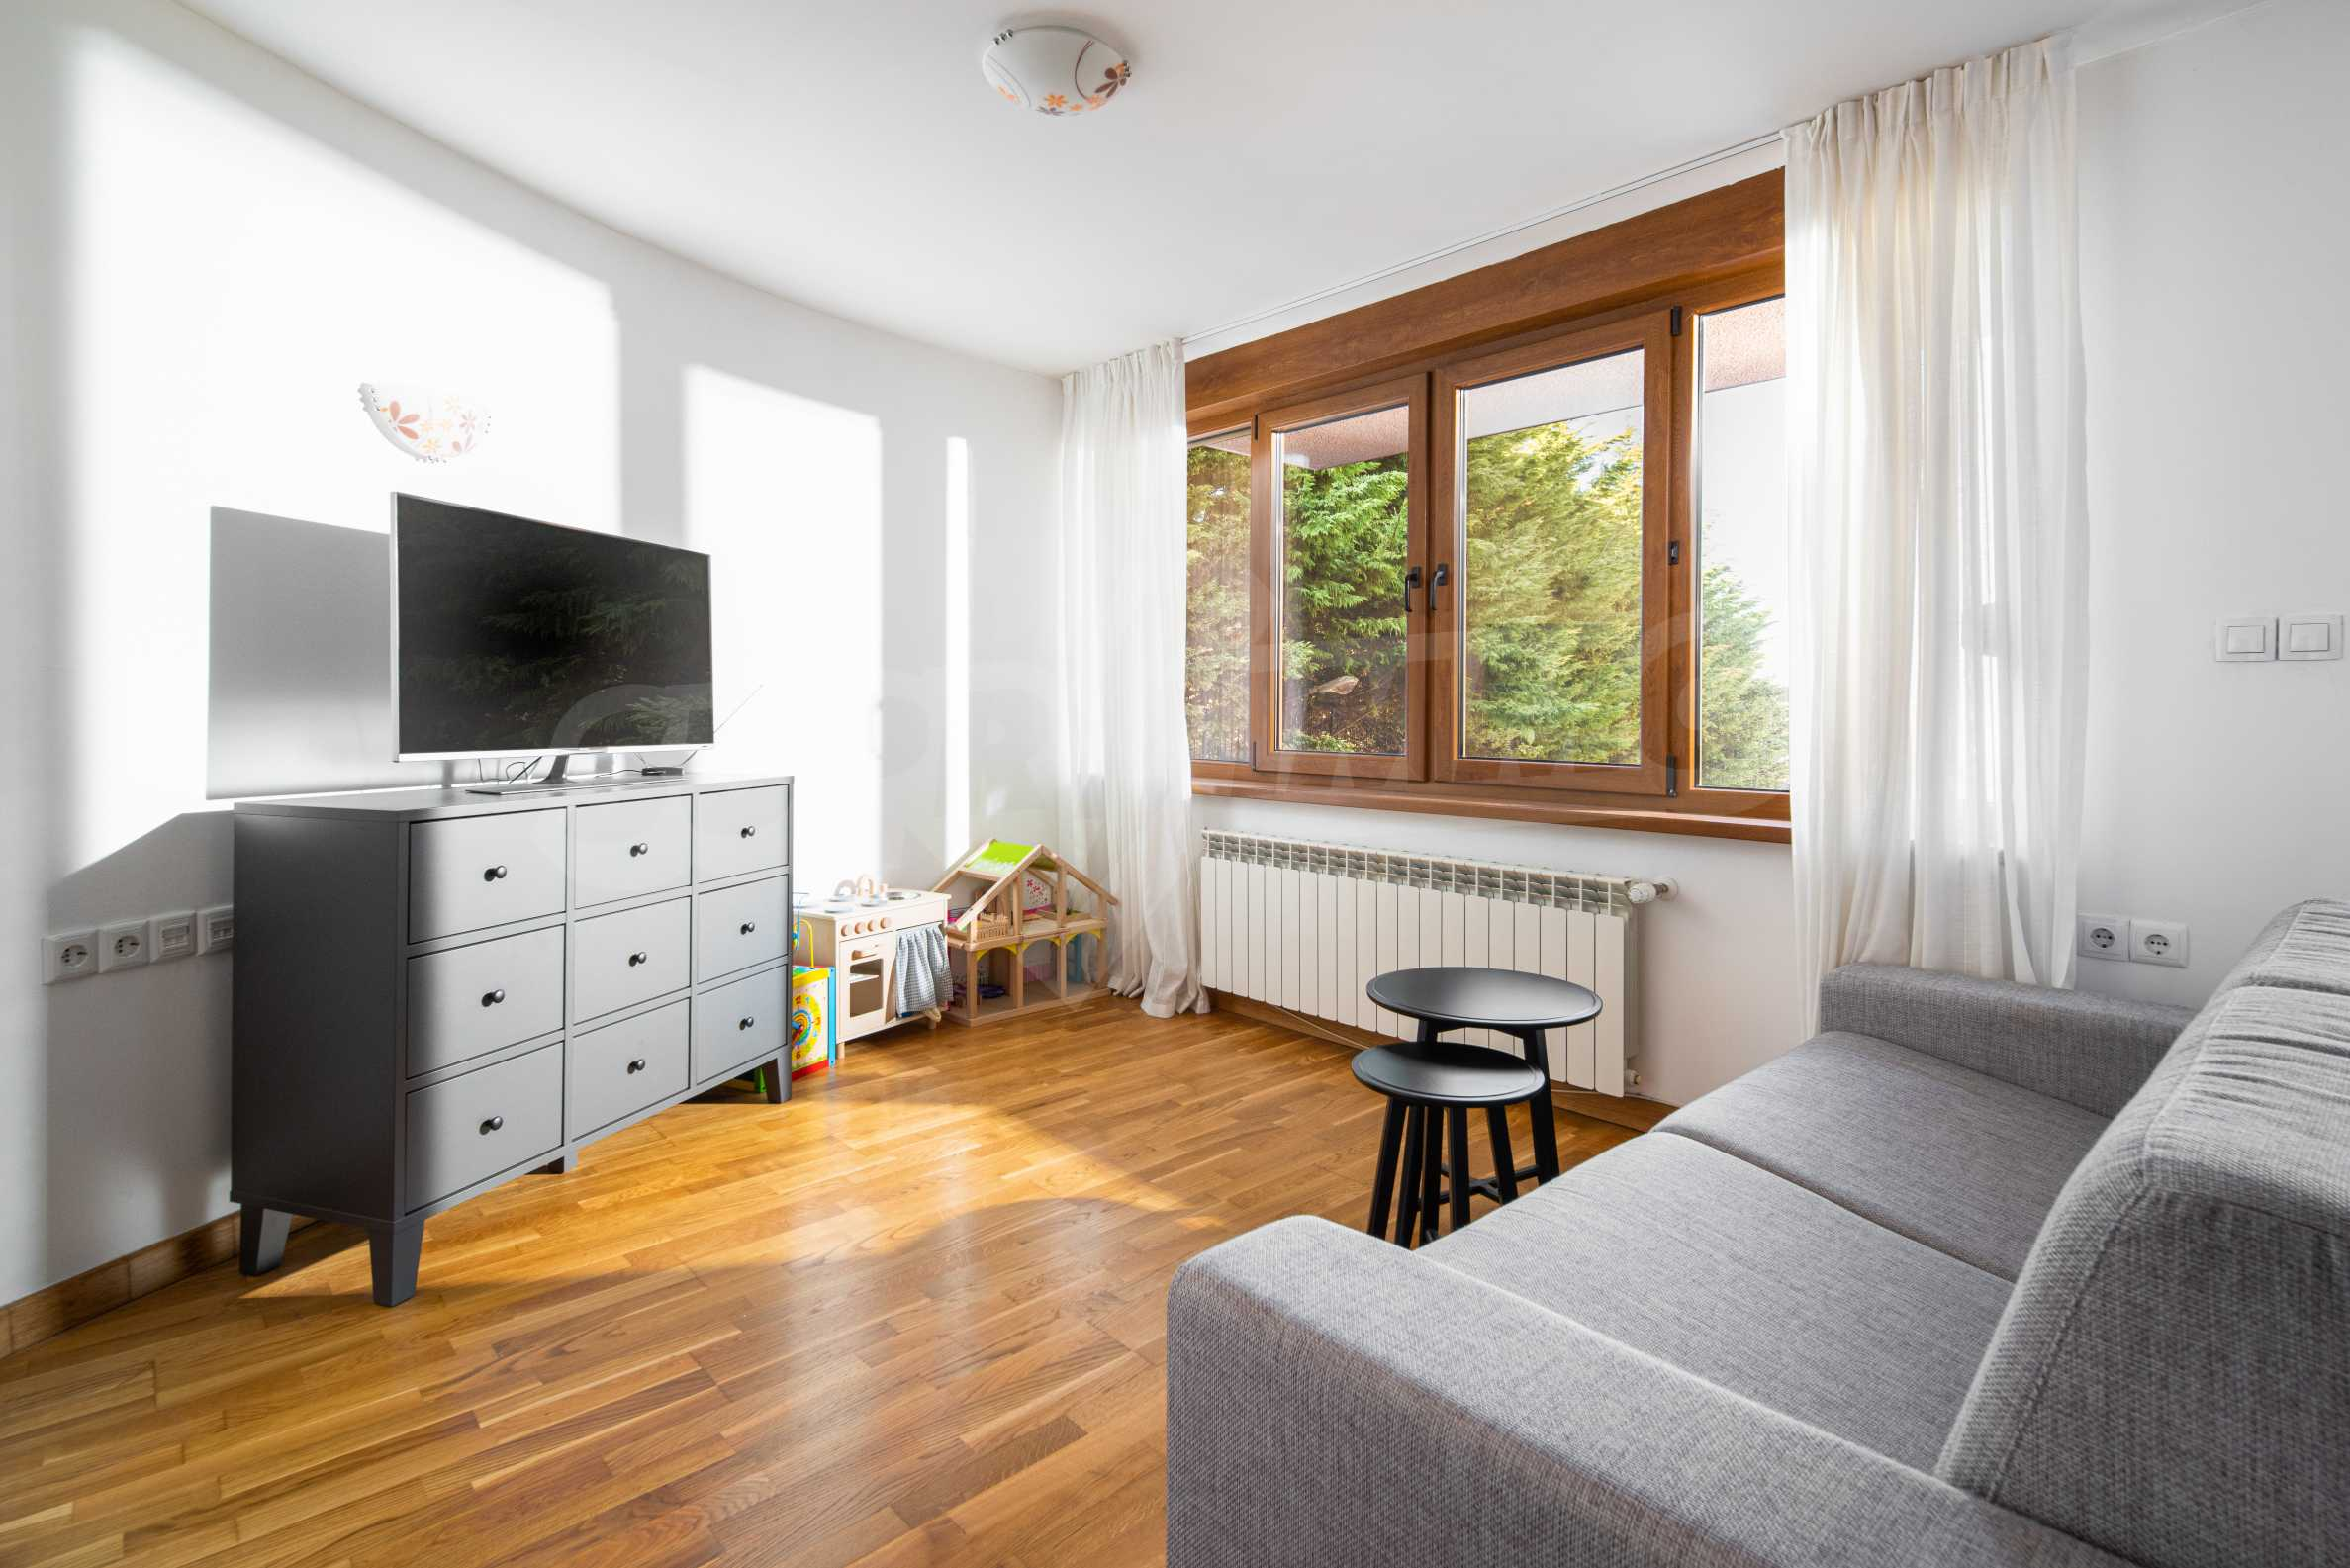 Cozy and bright studio for sale in a well-maintained complex at the foot of Vitosha Mountain